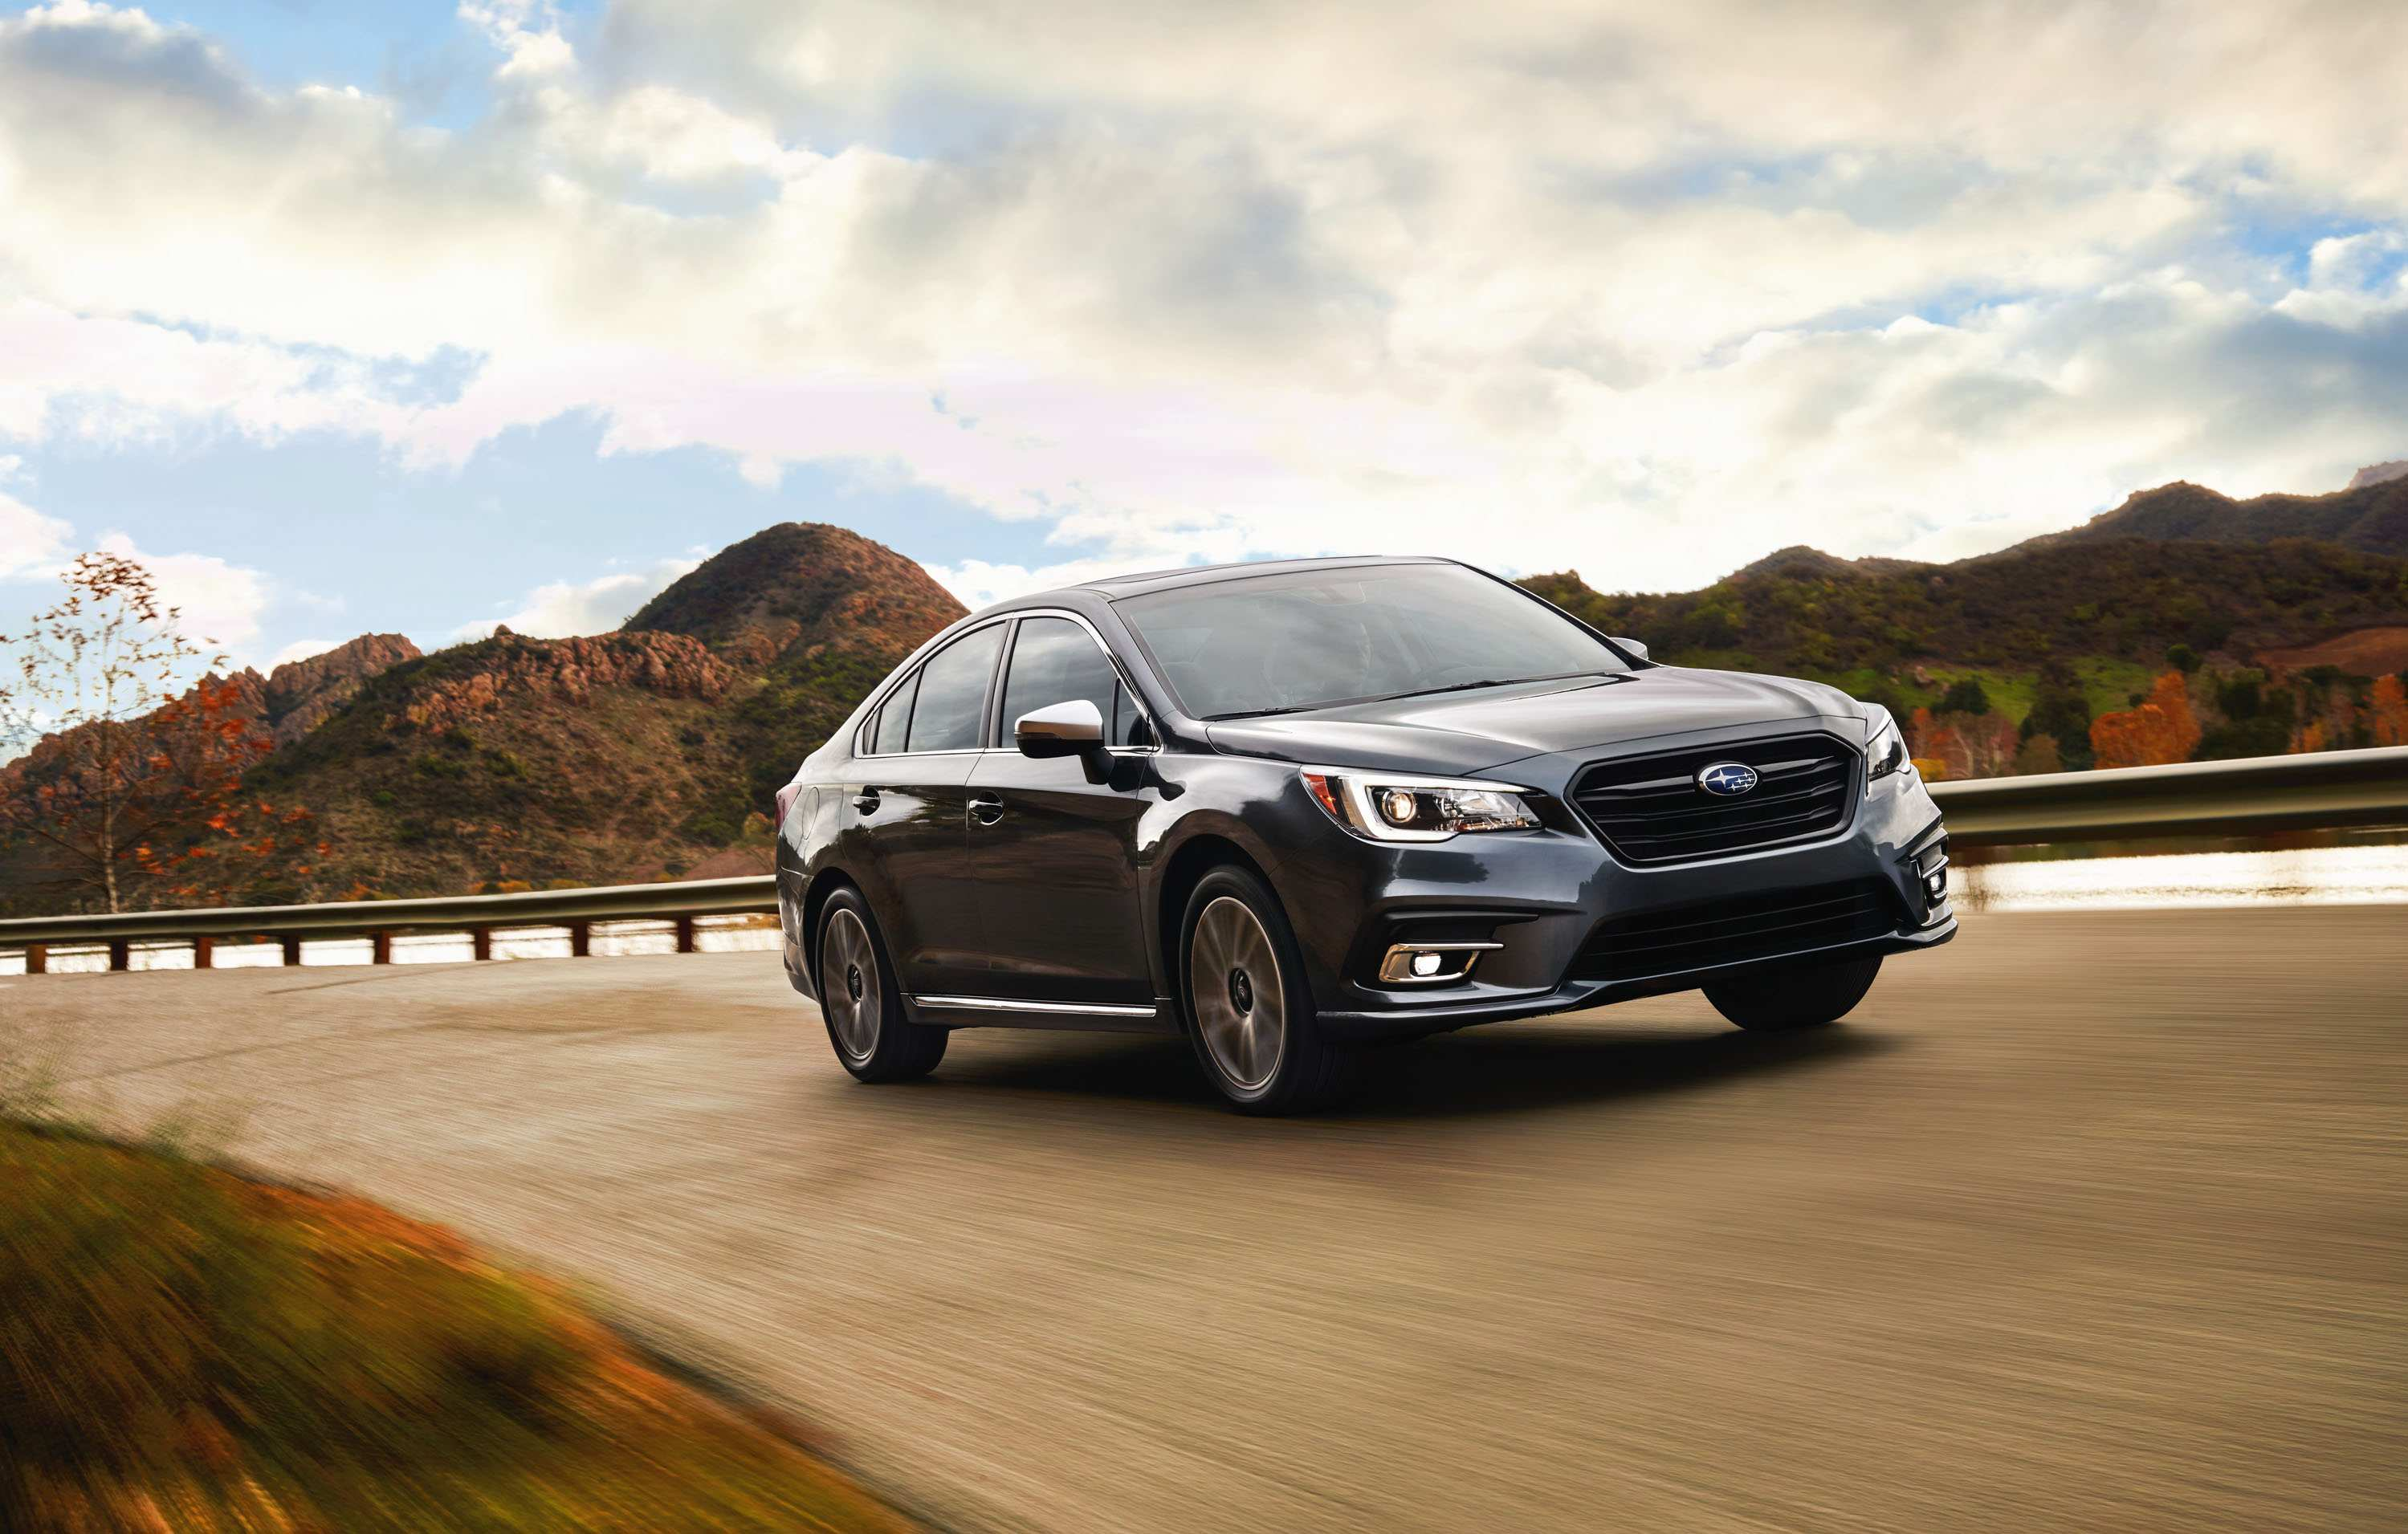 15 A The Subaru Legacy Gt 2019 Performance Price And Release Date